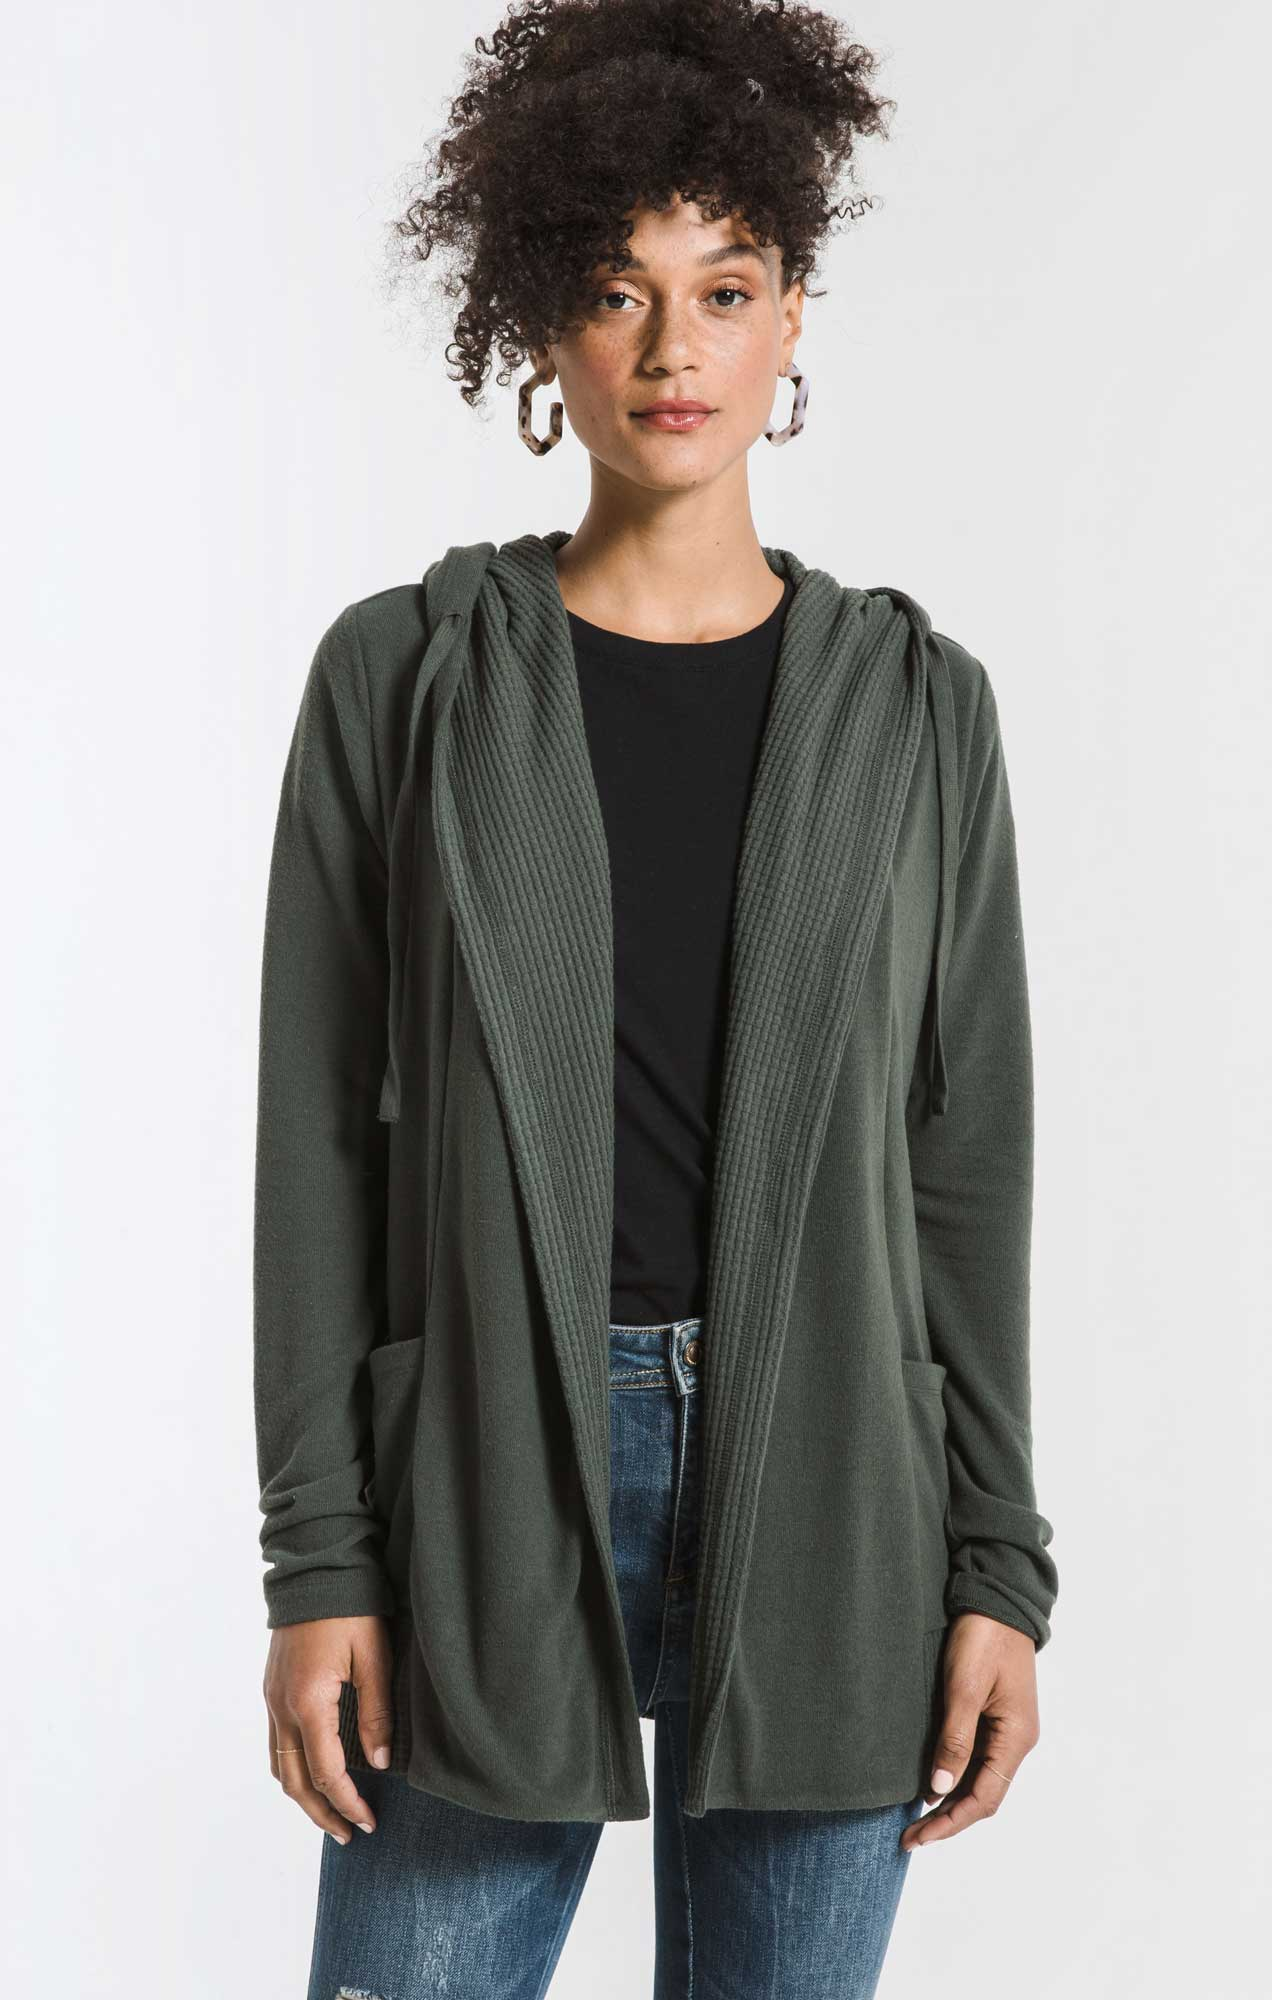 Sweaters The Thermal Lined Soft Spun Cardigan Rosin